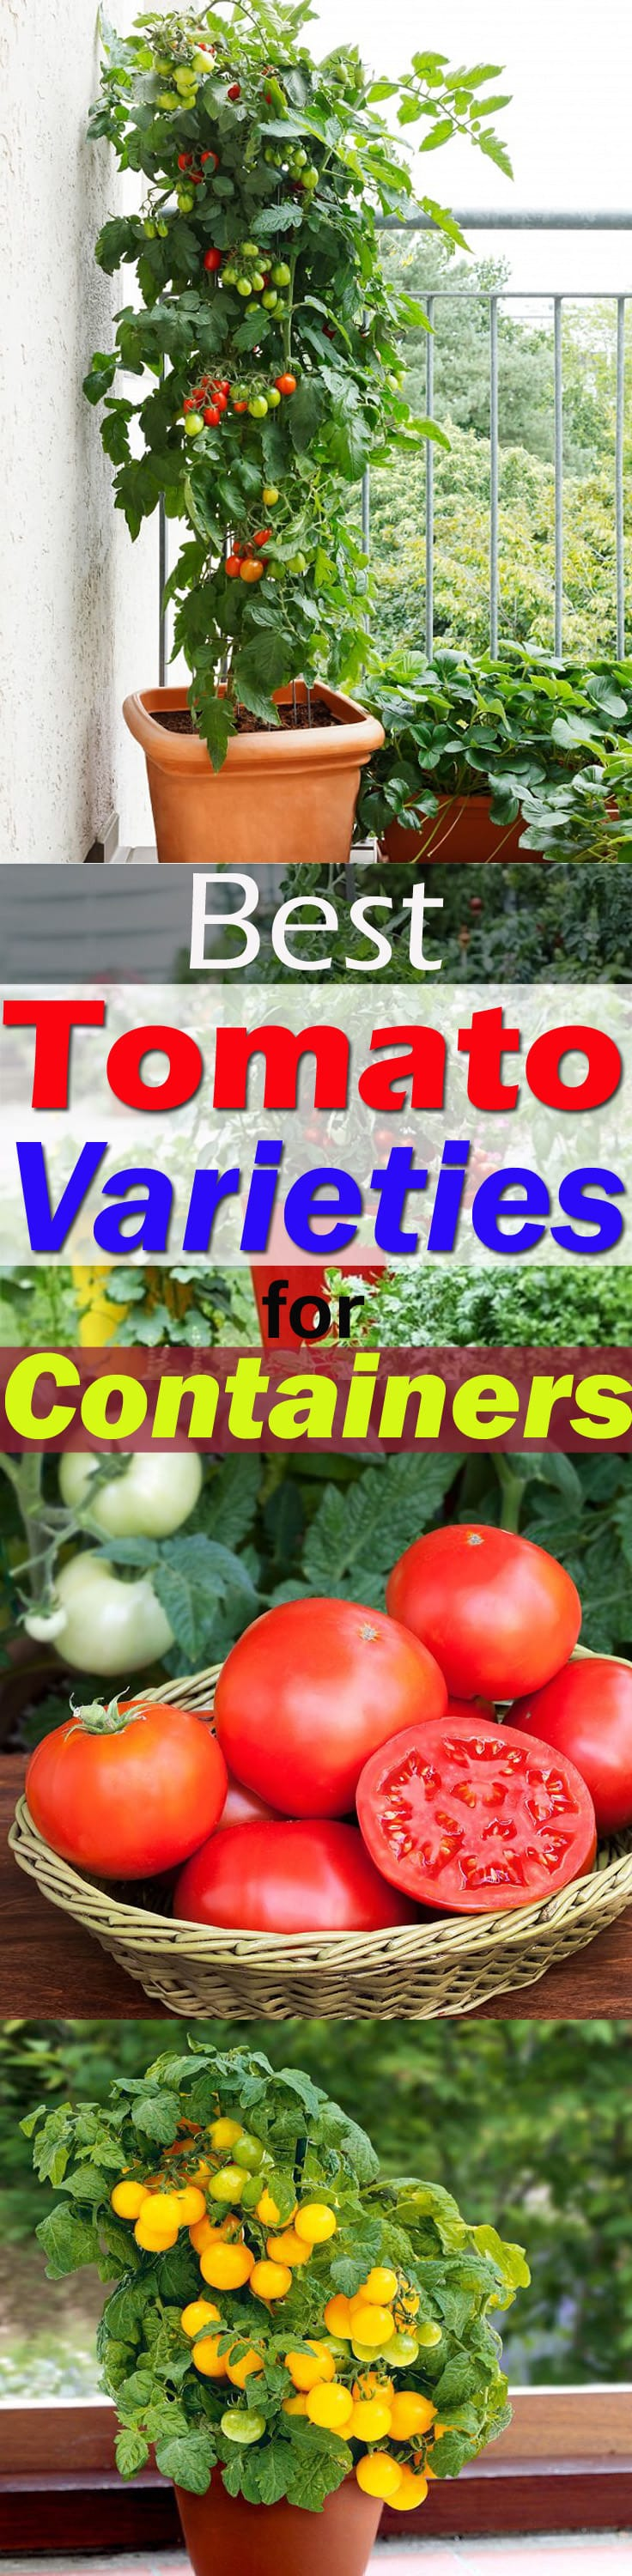 It is possible to grow tomatoes in pots, but there are a few BEST TOMATO VARIETIES FOR CONTAINERS that are easy to grow, taste great and produce heavily. Check out!